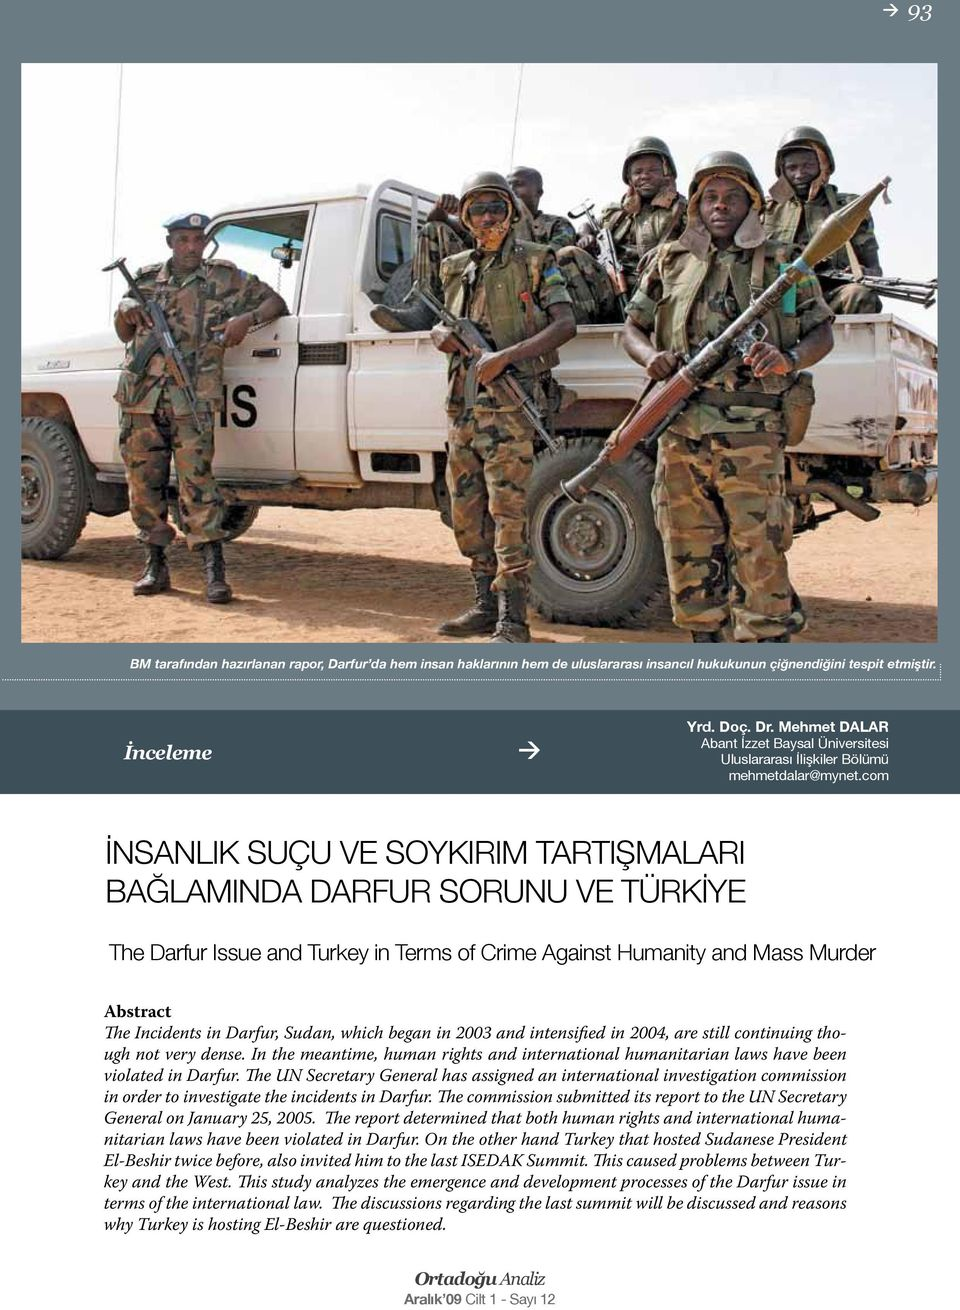 com İNSANLIK SUÇU VE SOYKIRIM TARTIŞMALARI BAĞLAMINDA DARFUR SORUNU VE TÜRKİYE The Darfur Issue and Turkey in Terms of Crime Against Humanity and Mass Murder Abstract The Incidents in Darfur, Sudan,